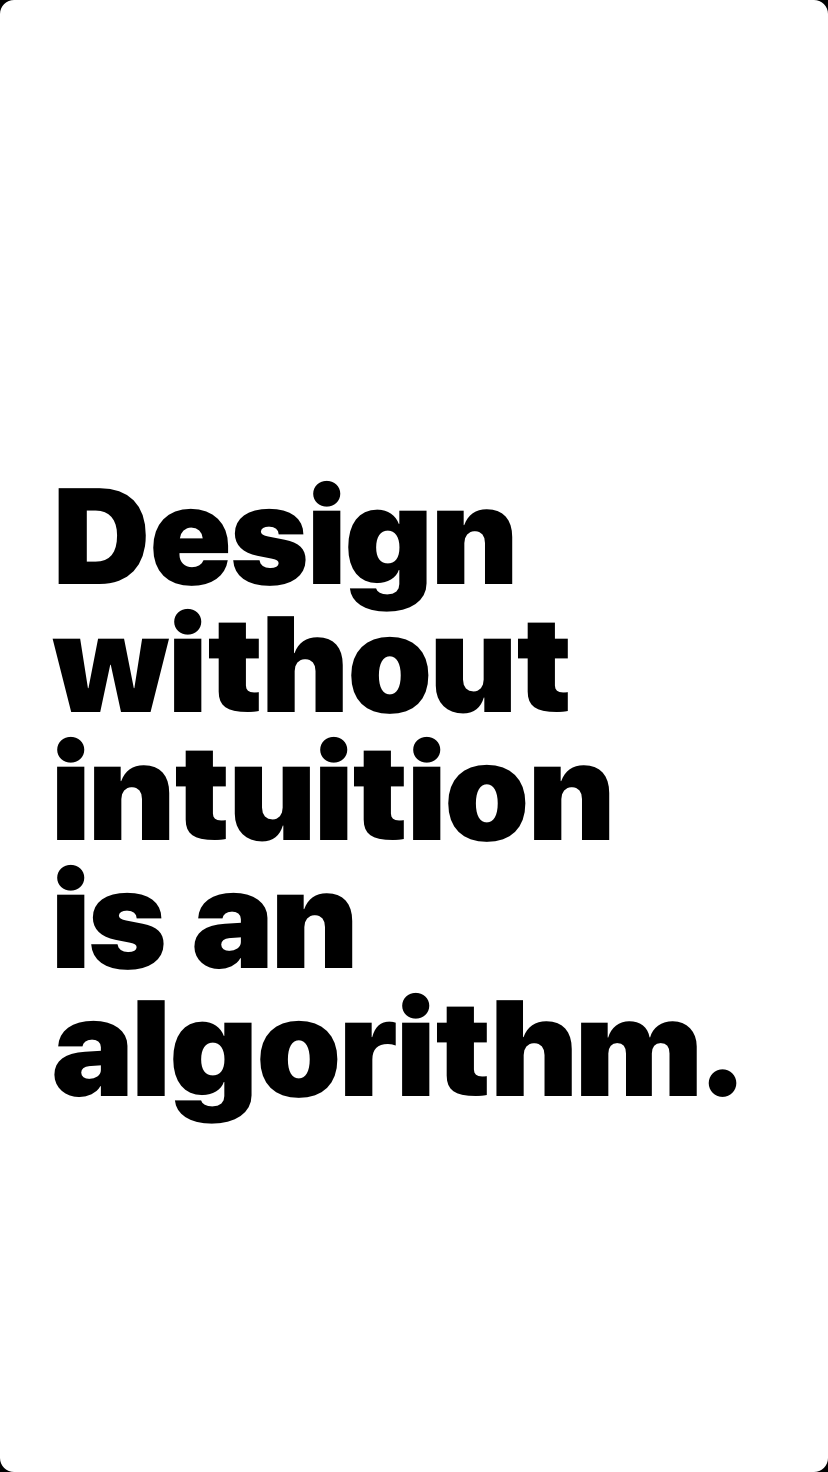 Design without intuition is an algorithm.